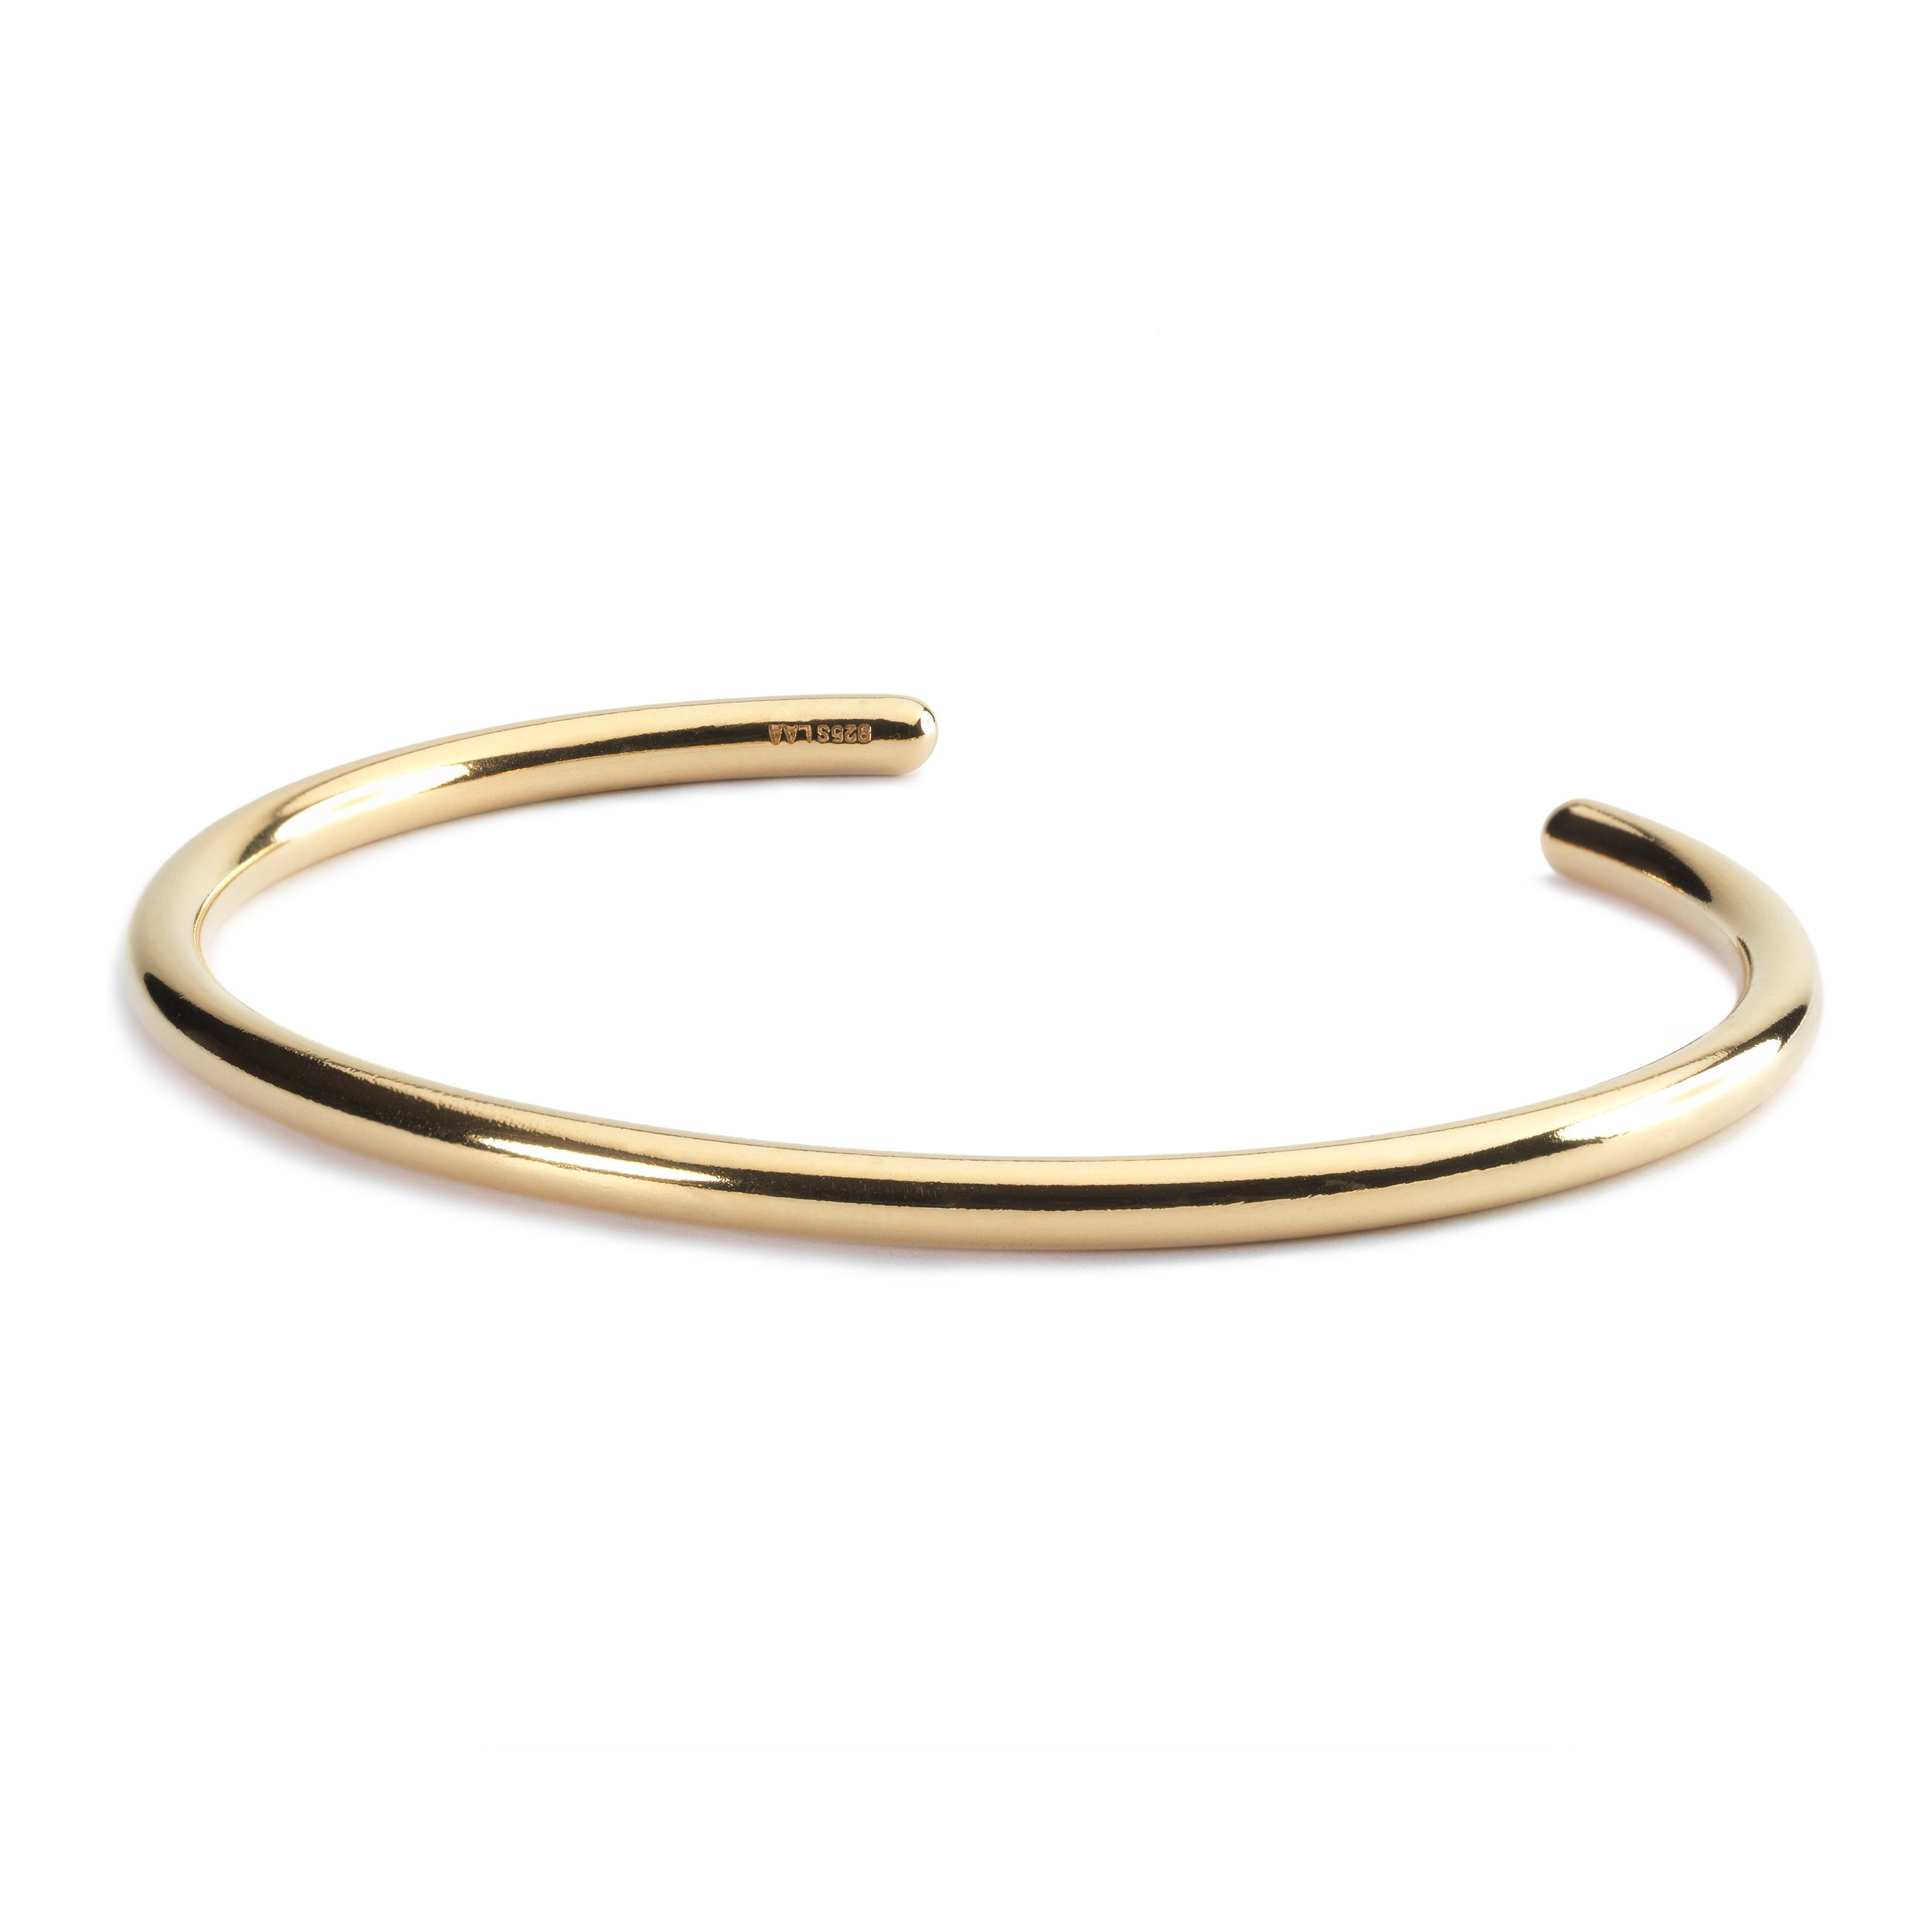 of varieties bangle bangles bracelet choosing popular best gold